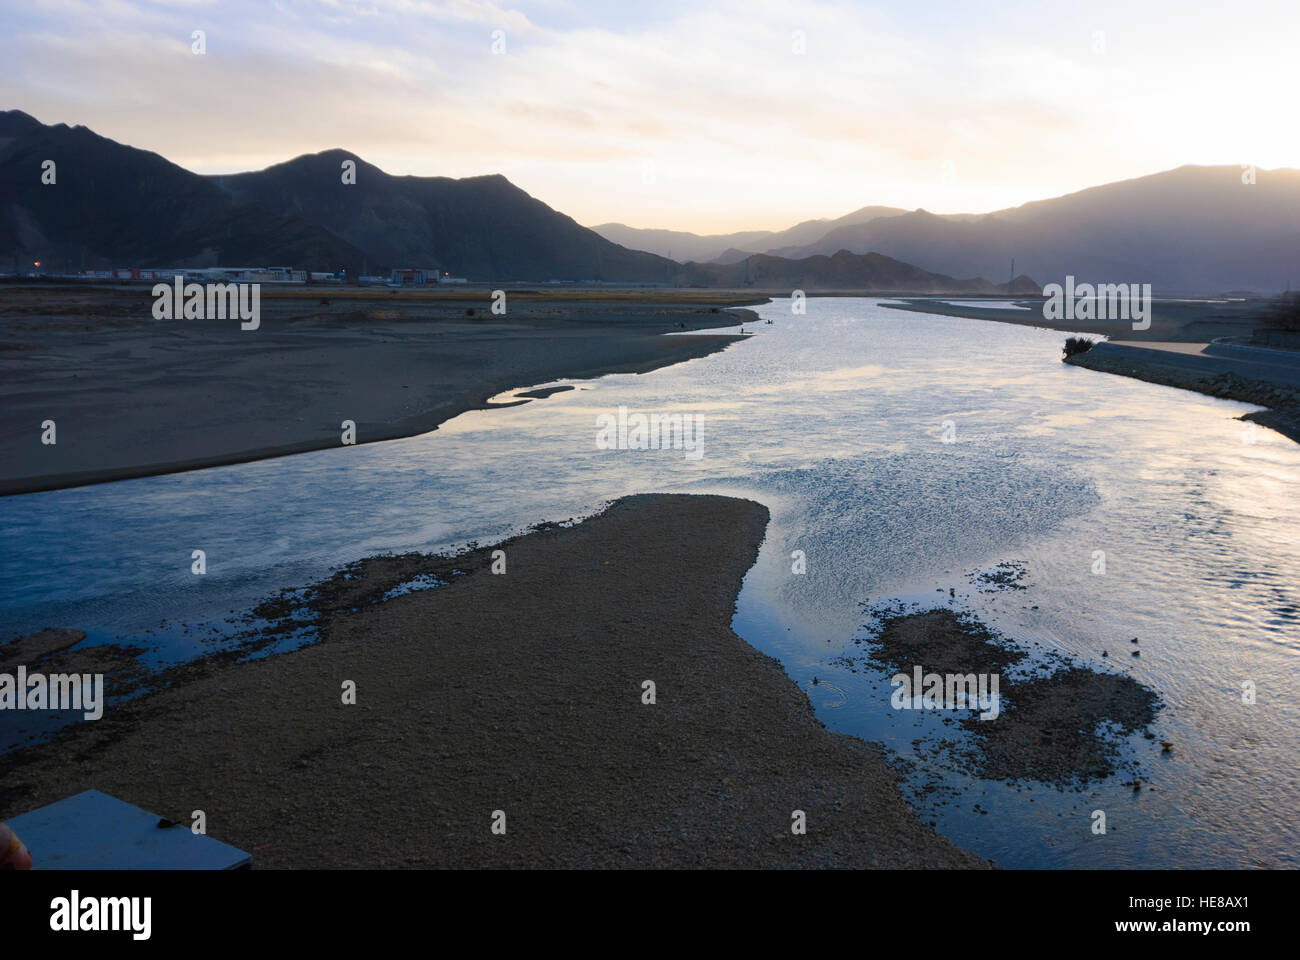 Lhasa: River Kyichu overlooking the railway station at sunset, Tibet, China Stock Photo